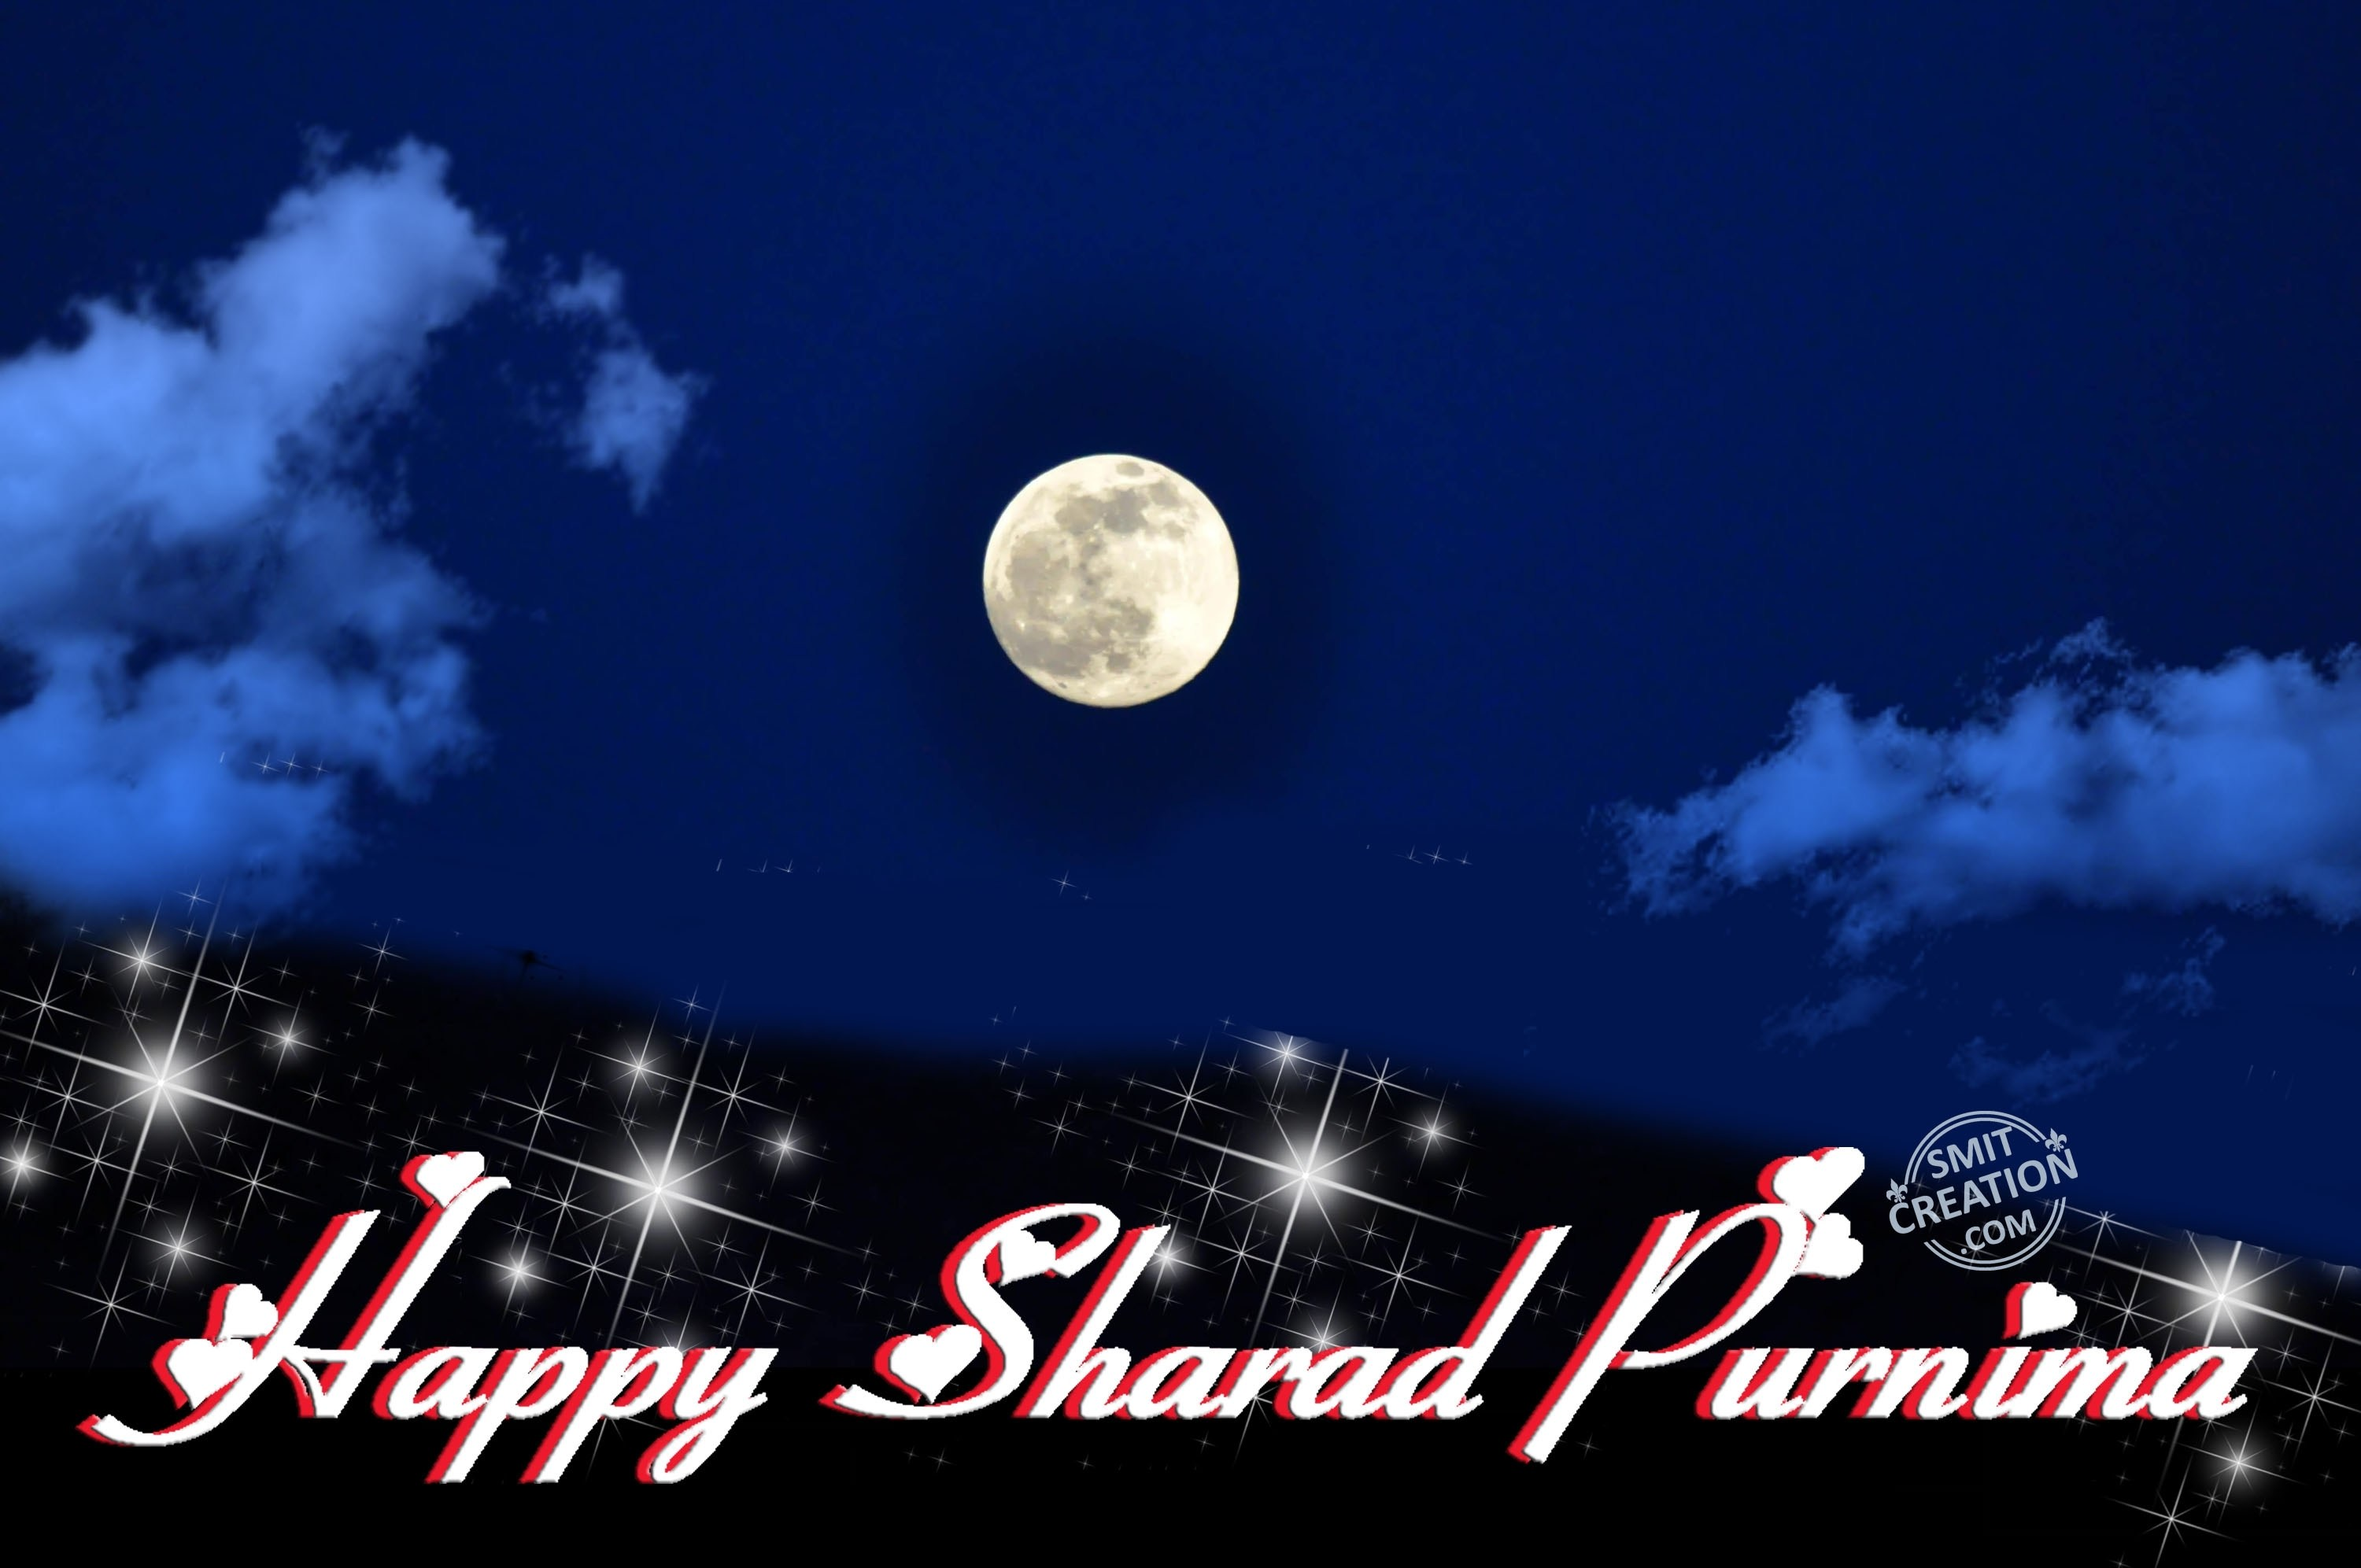 HAPPY SHARAD PURNIMA - SmitCreation.com